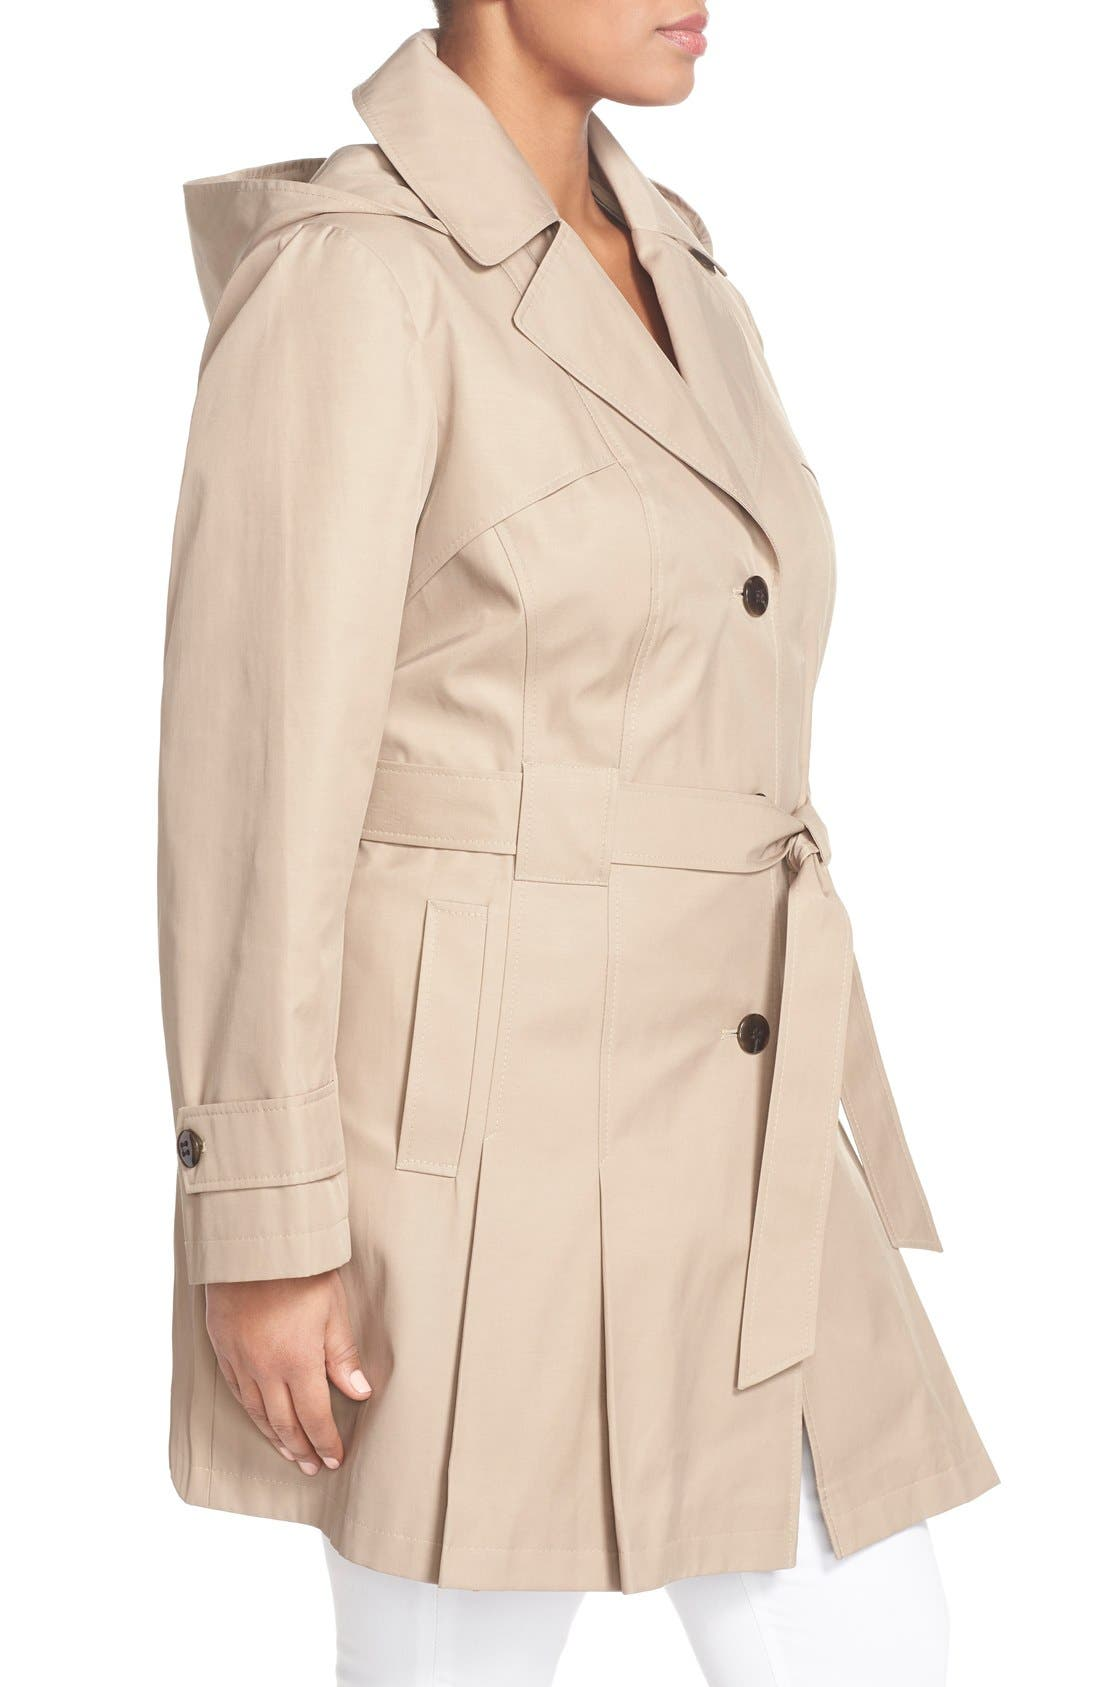 'Scarpa' Single Breasted Trench Coat,                             Alternate thumbnail 14, color,